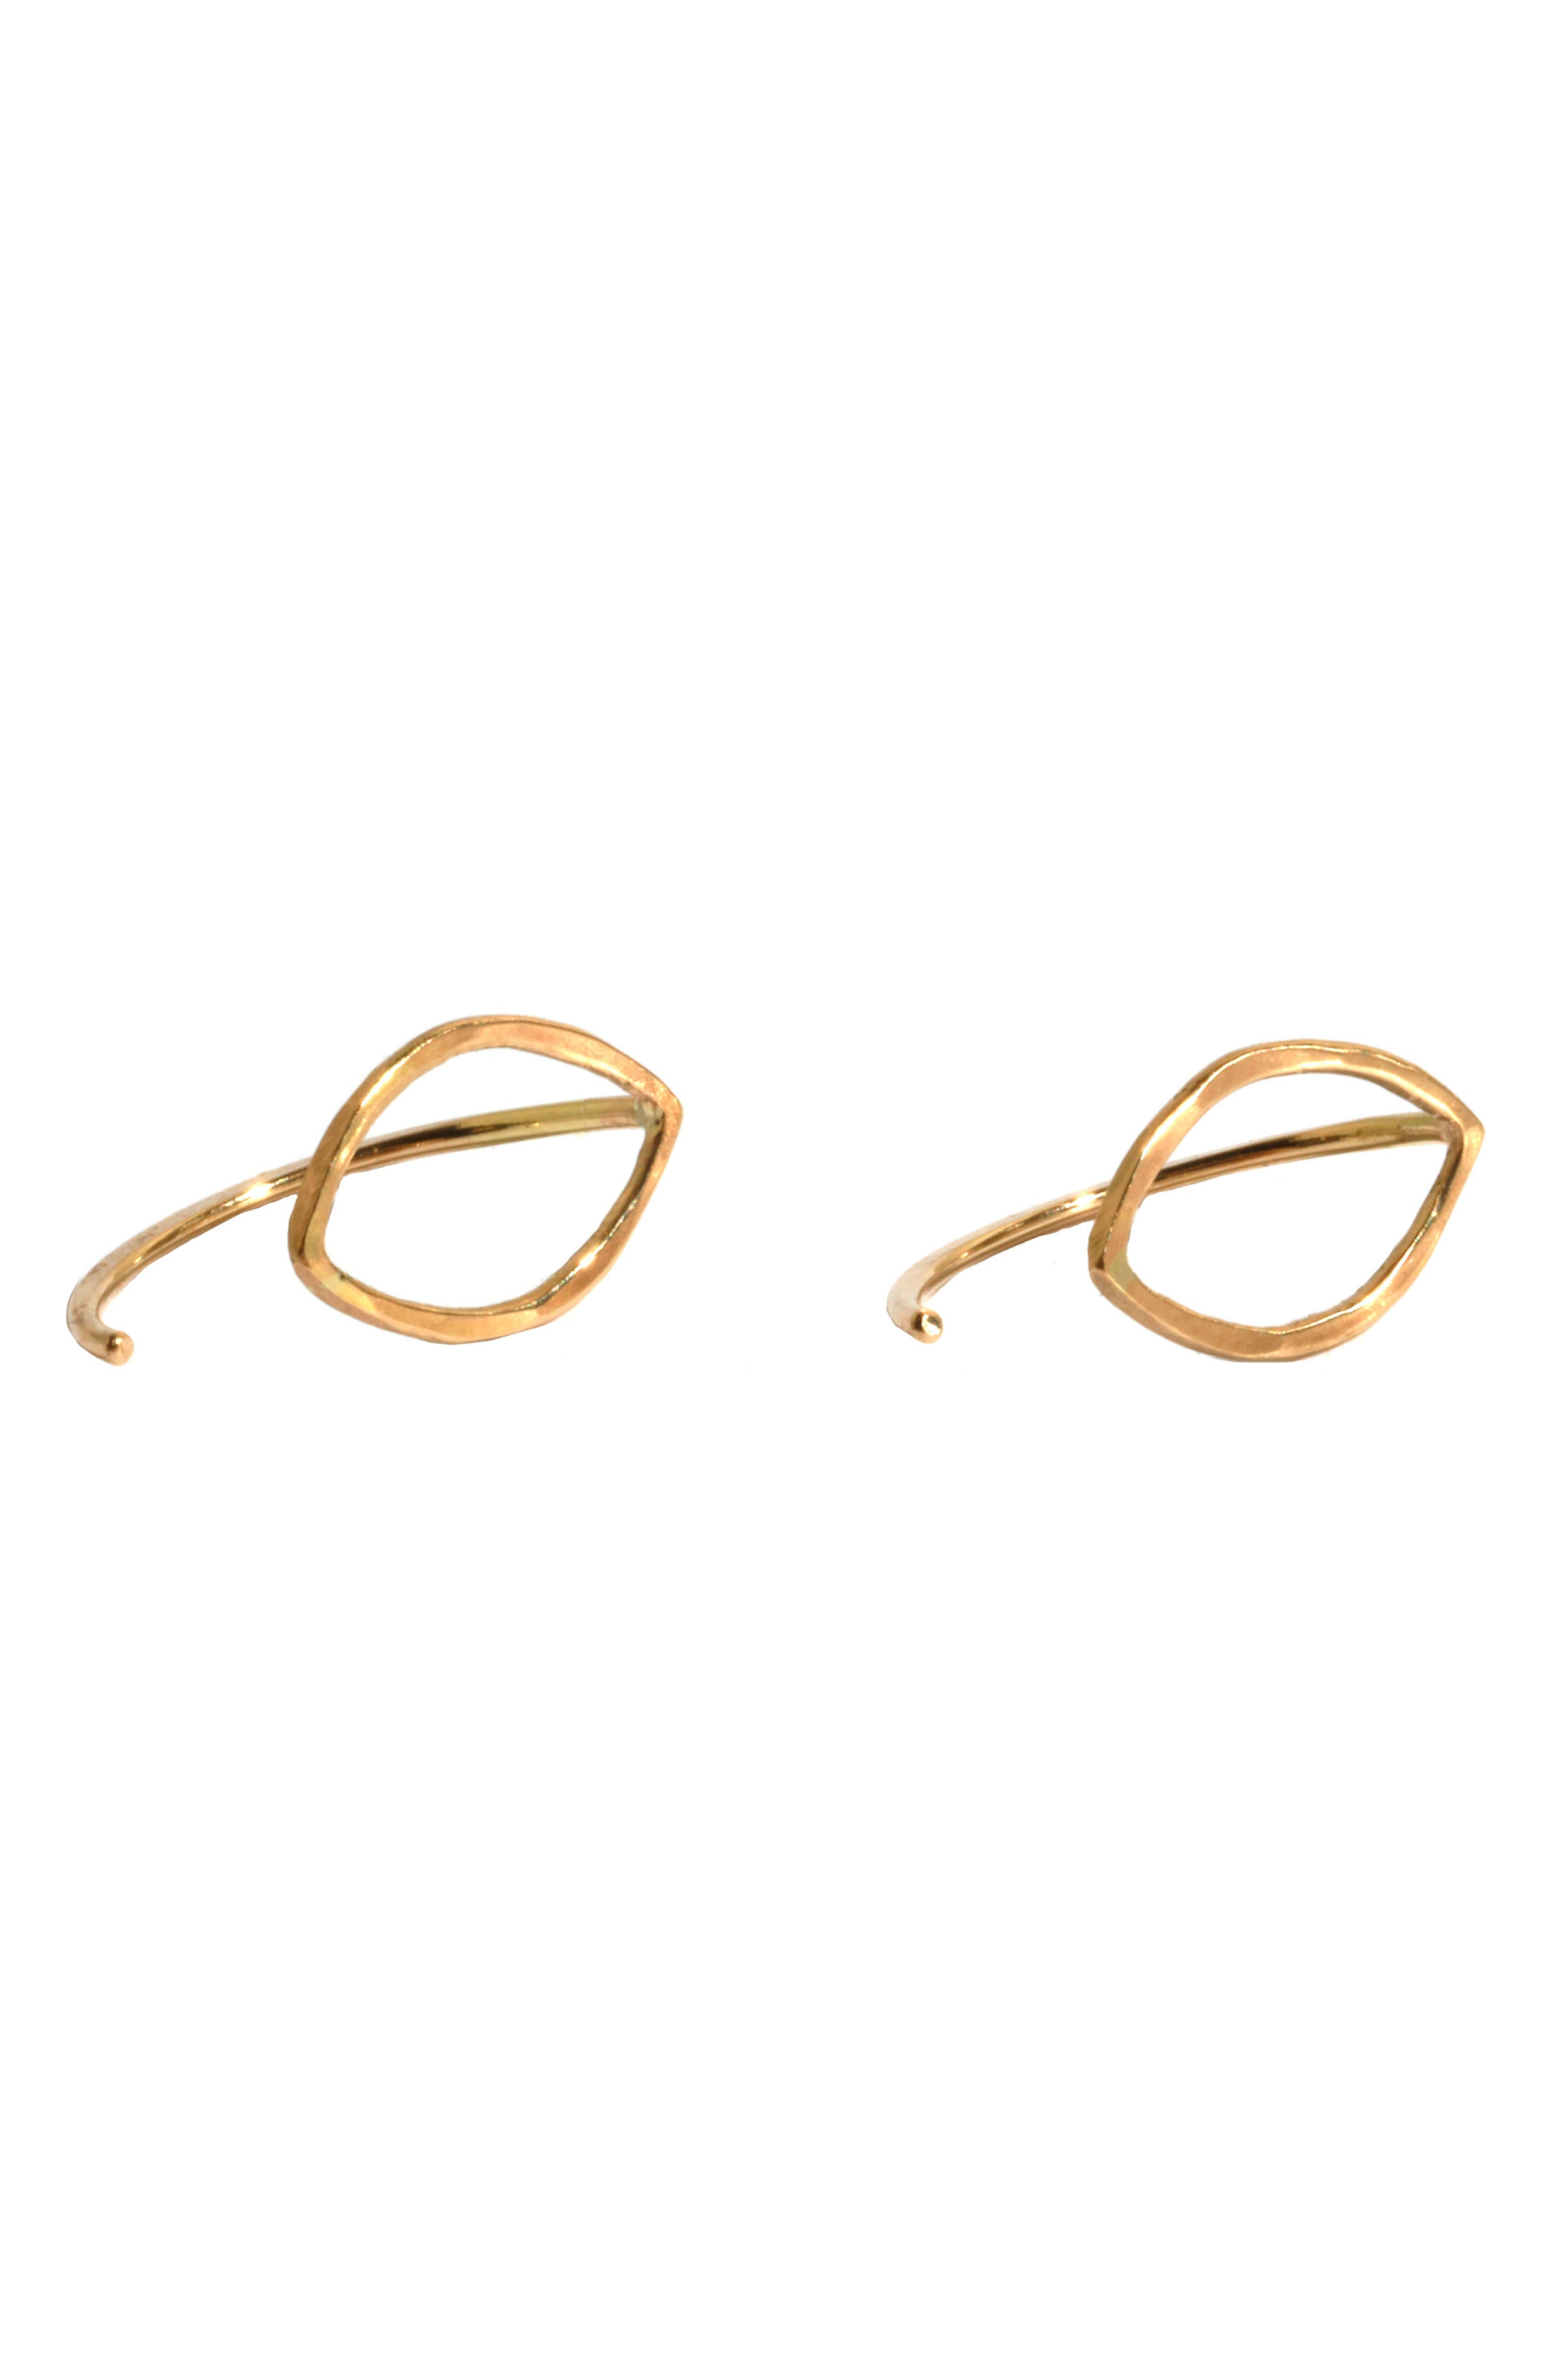 Small Oval Threader Stud Earrings,                             Main thumbnail 1, color,                             YELLOW GOLD